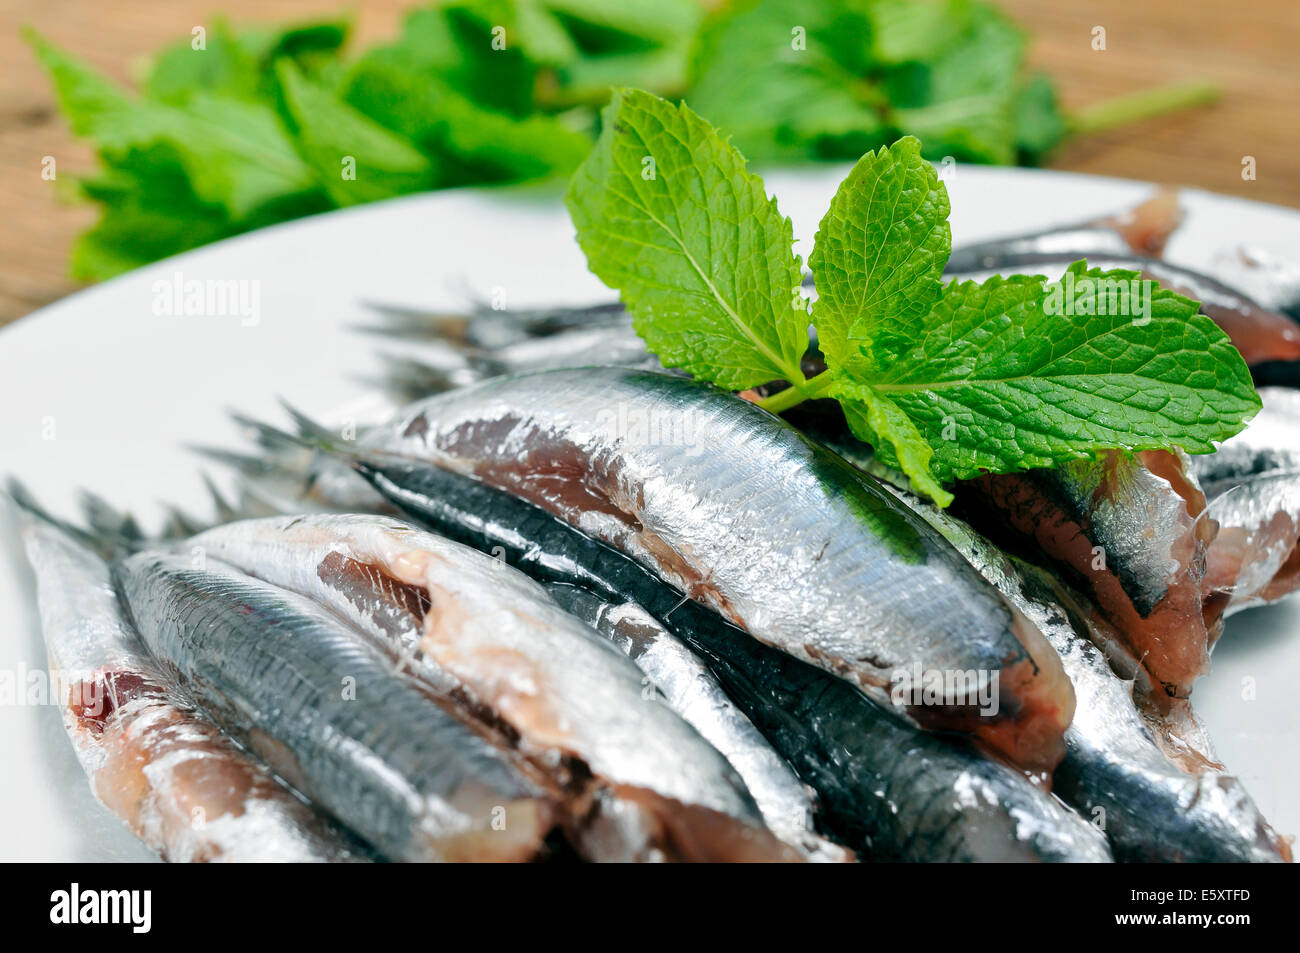 a plate with some raw spanish boquerones, anchovies typical in Spain, ready to be cooked - Stock Image